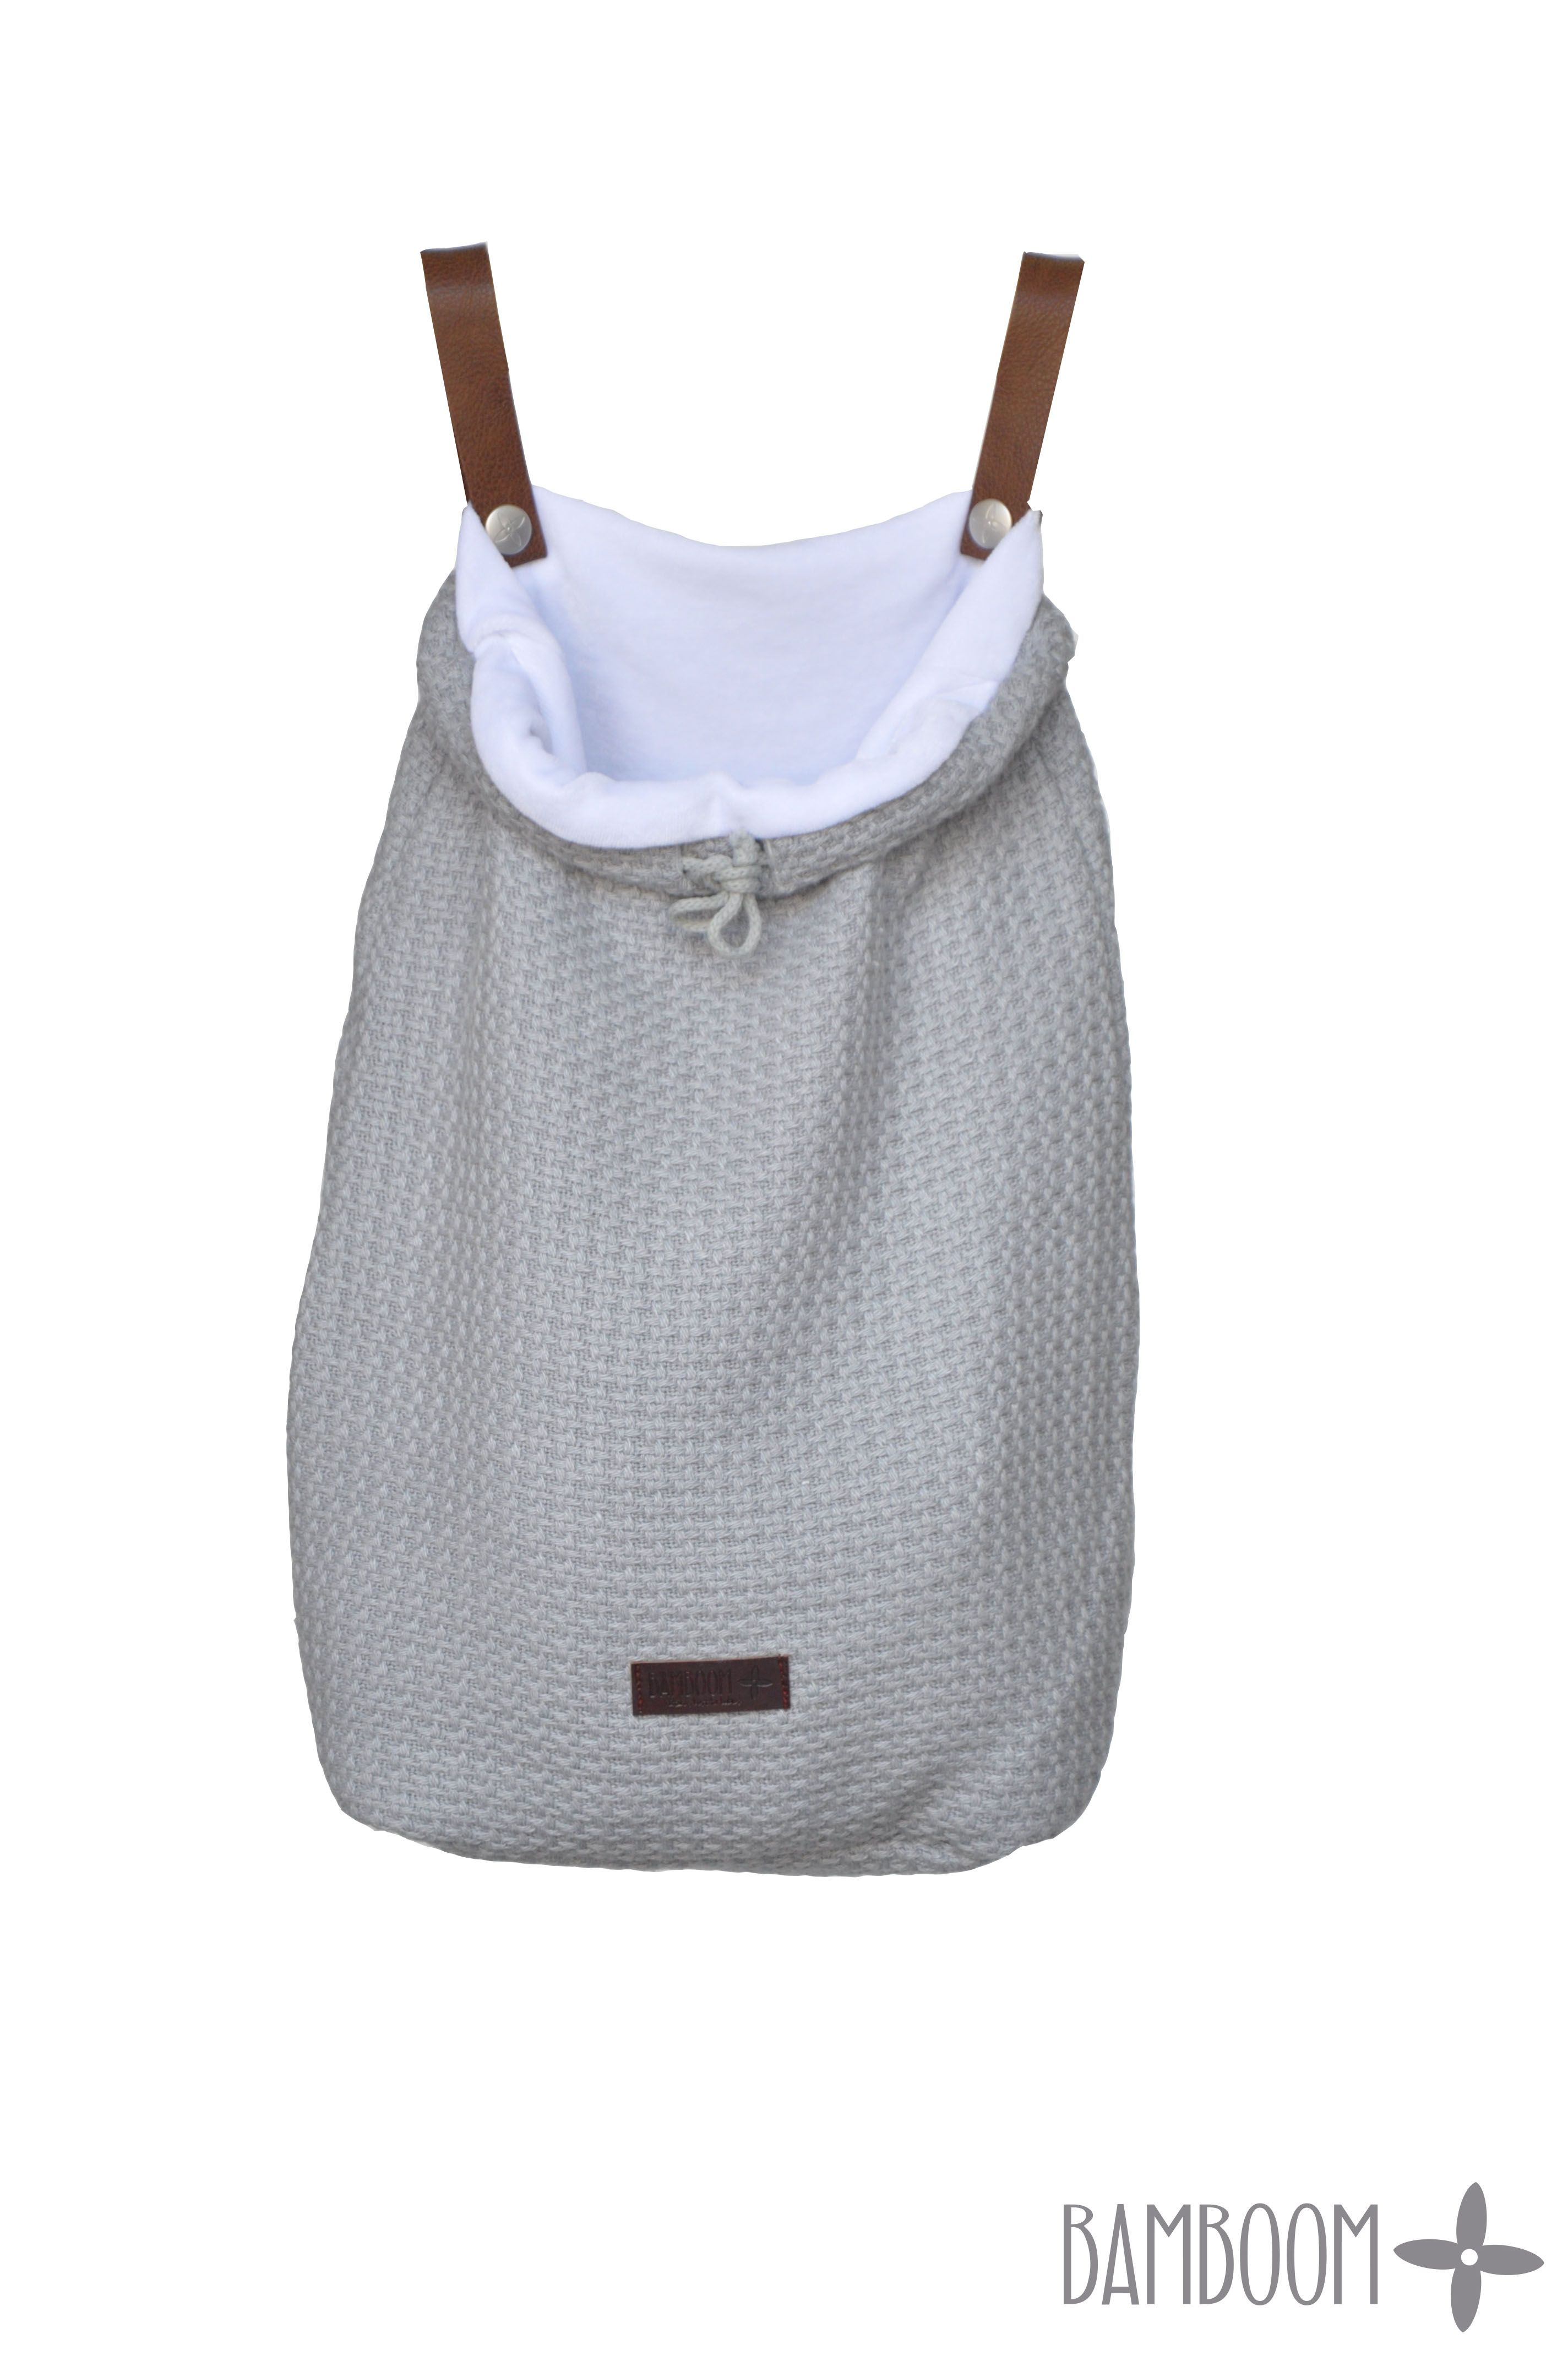 Piana Bag, comfortable and beautiful, very soft, to keep toys  and baby staff.  #motherhood  #babyclothes  #ig_motherhood #swaddle #babyclothing #babyroom #babiesofinstagram #firstmoments #sleepingbaby #babytips #babystyle #listanascita #babyshower #instakids #instababy #babyboy #babygirl #trendsetter #ig_motherhood #babyclothing #babyroom